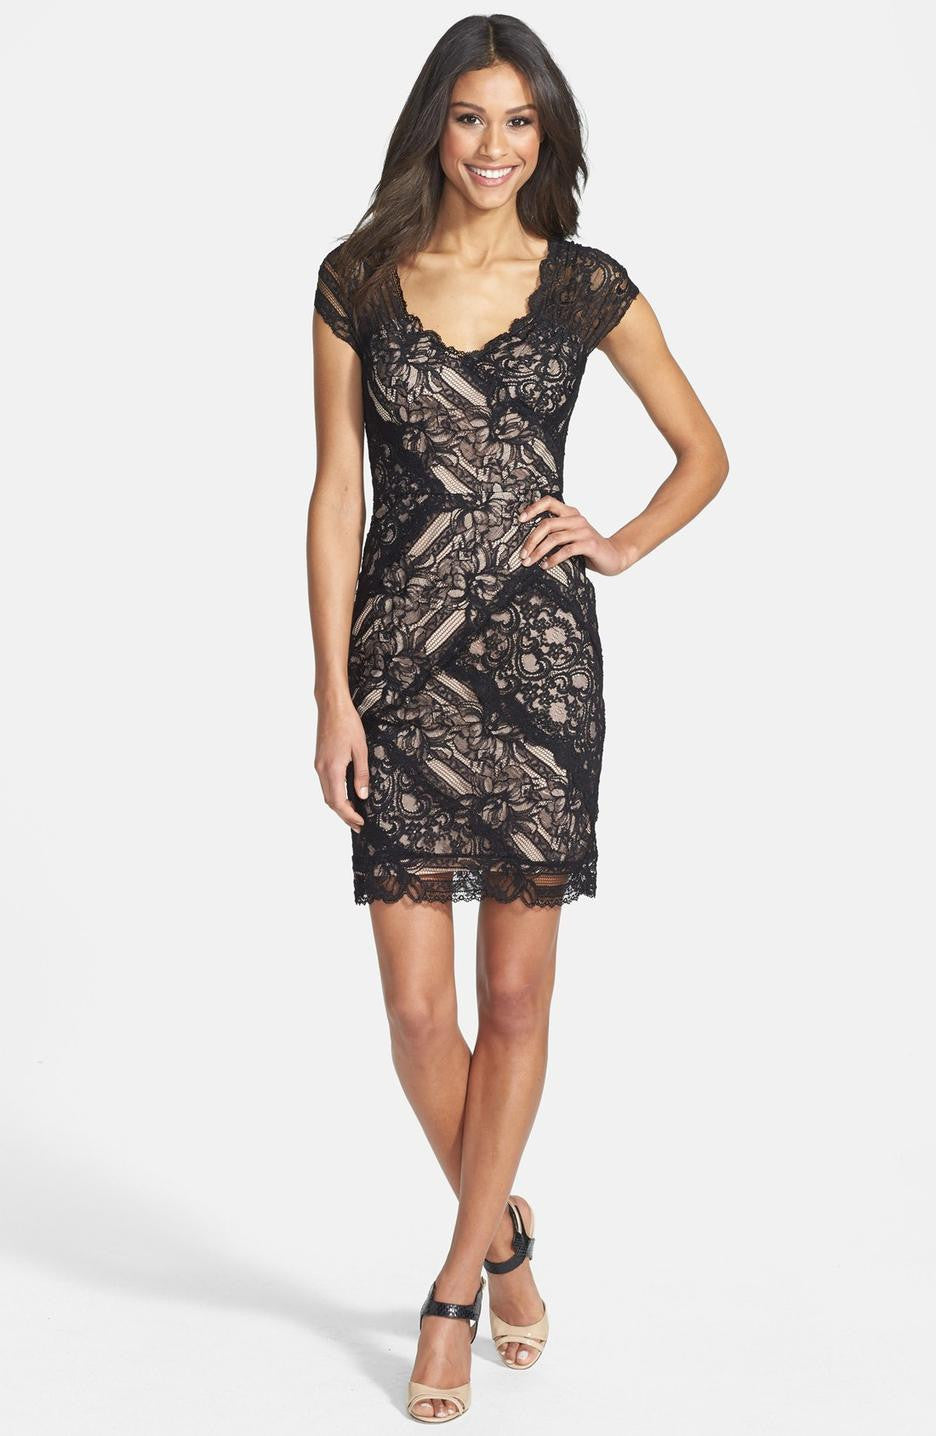 Nicole Miller Black Lace Cap Sleeve Dress - Joyce's Closet  - 1